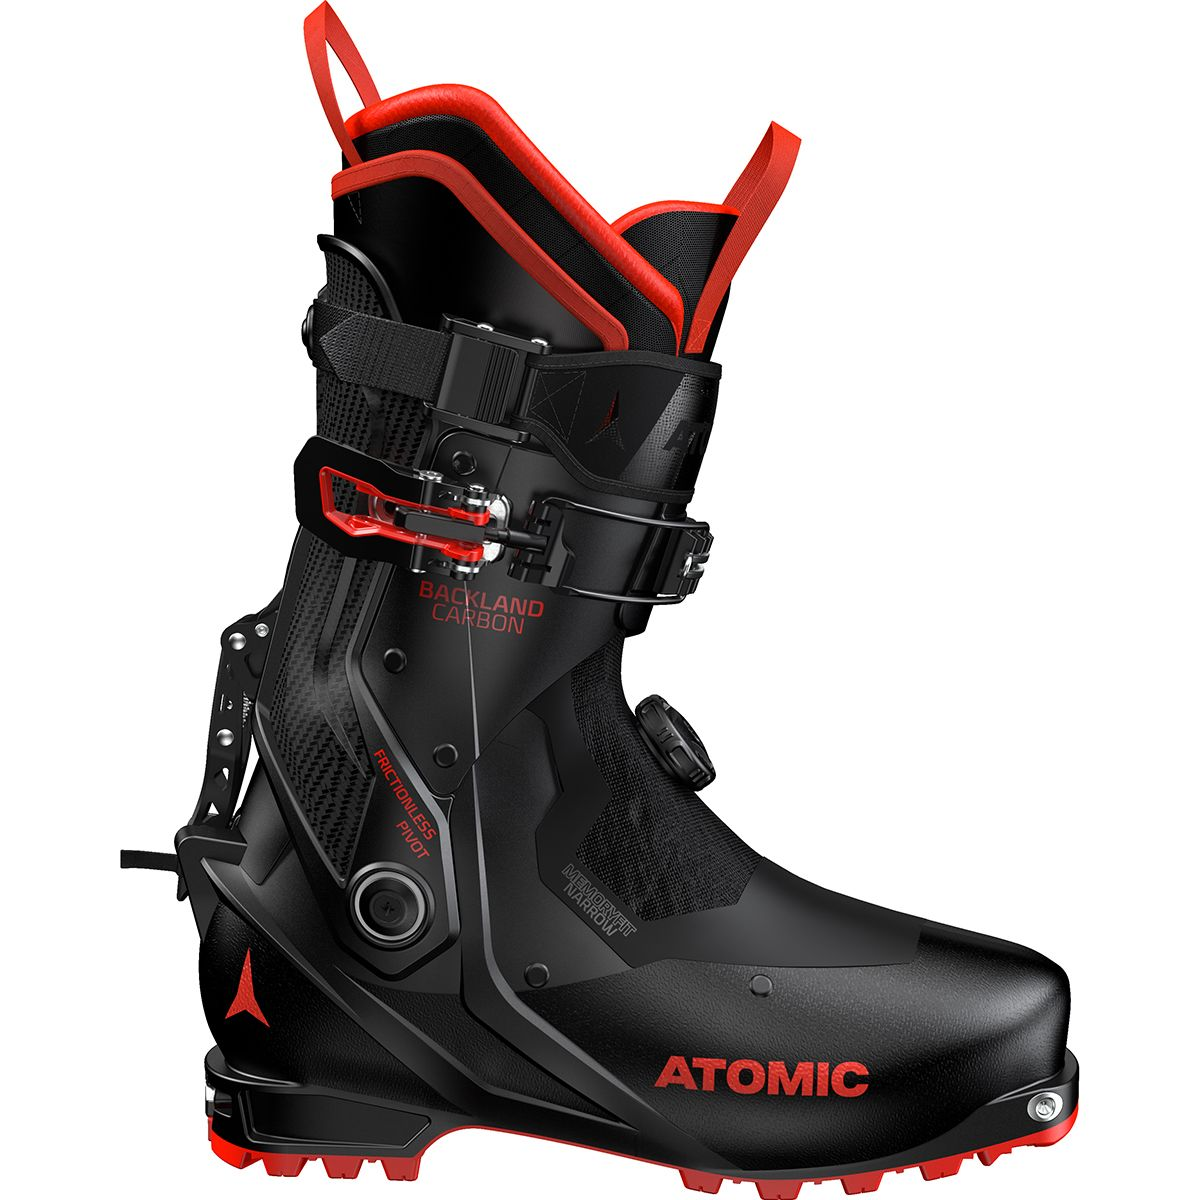 photo: Atomic Backland Carbon Boot alpine touring boot